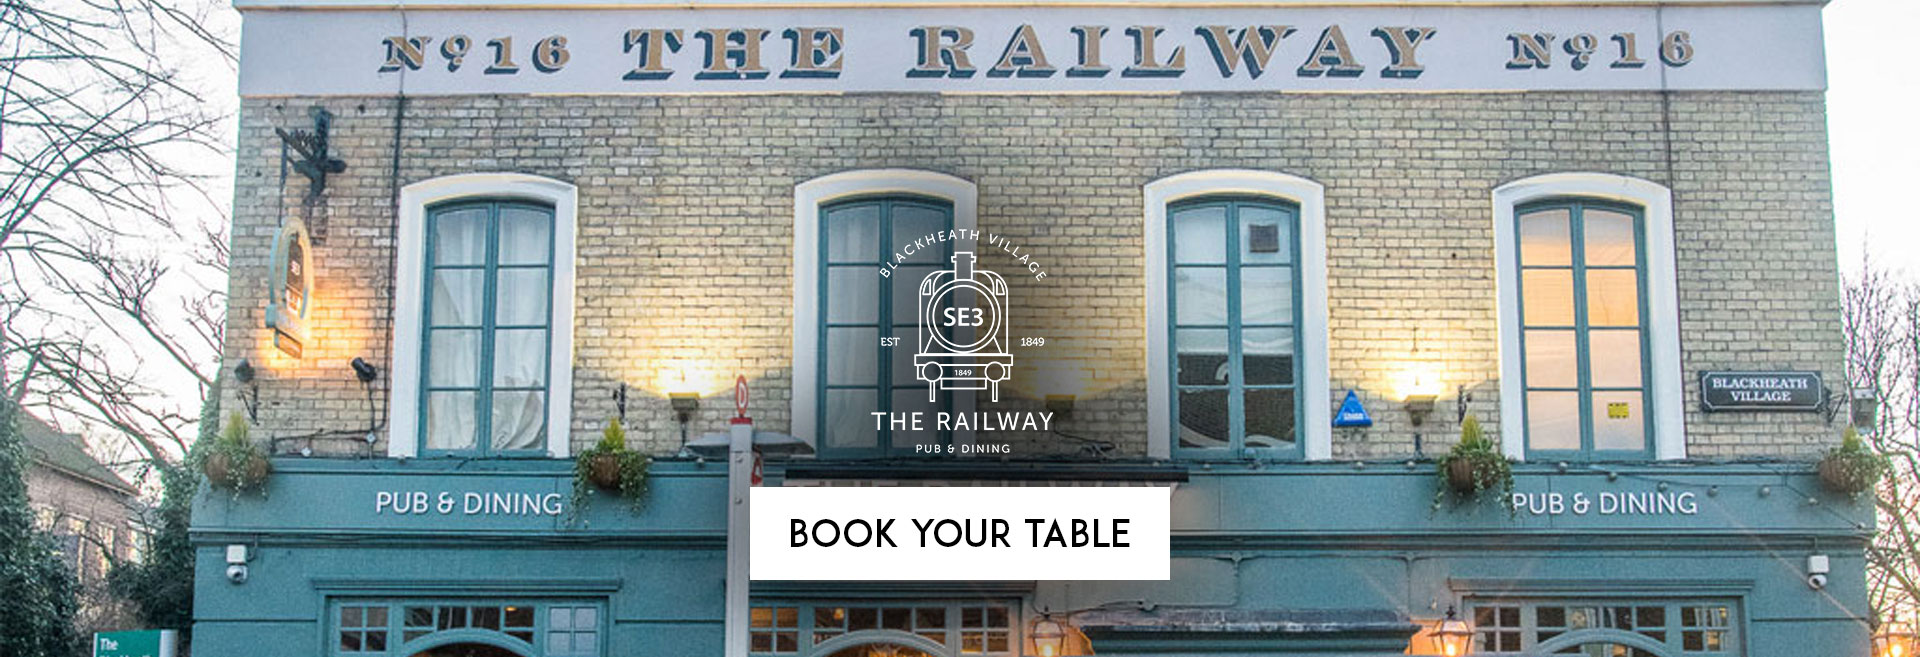 Book Your Table at The Railway